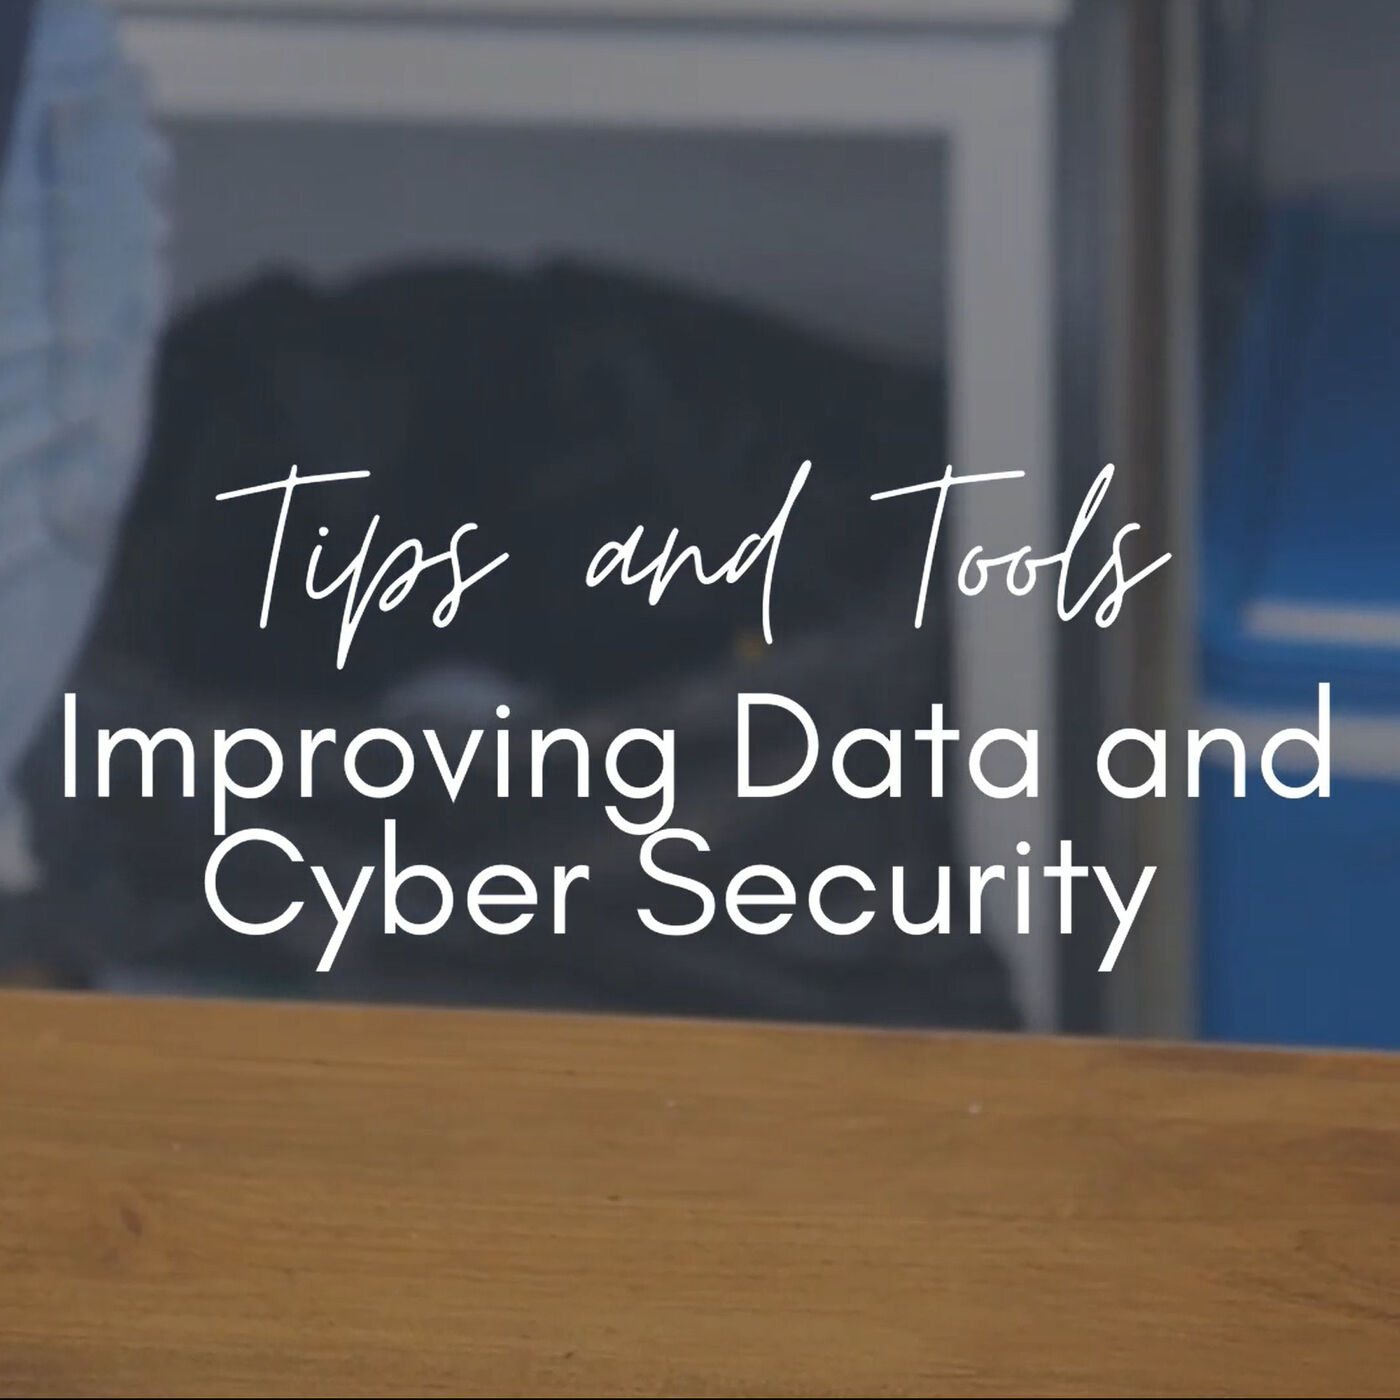 Tips and Tools: Improving Data and Cyber Security for Domestic Violence Organizations